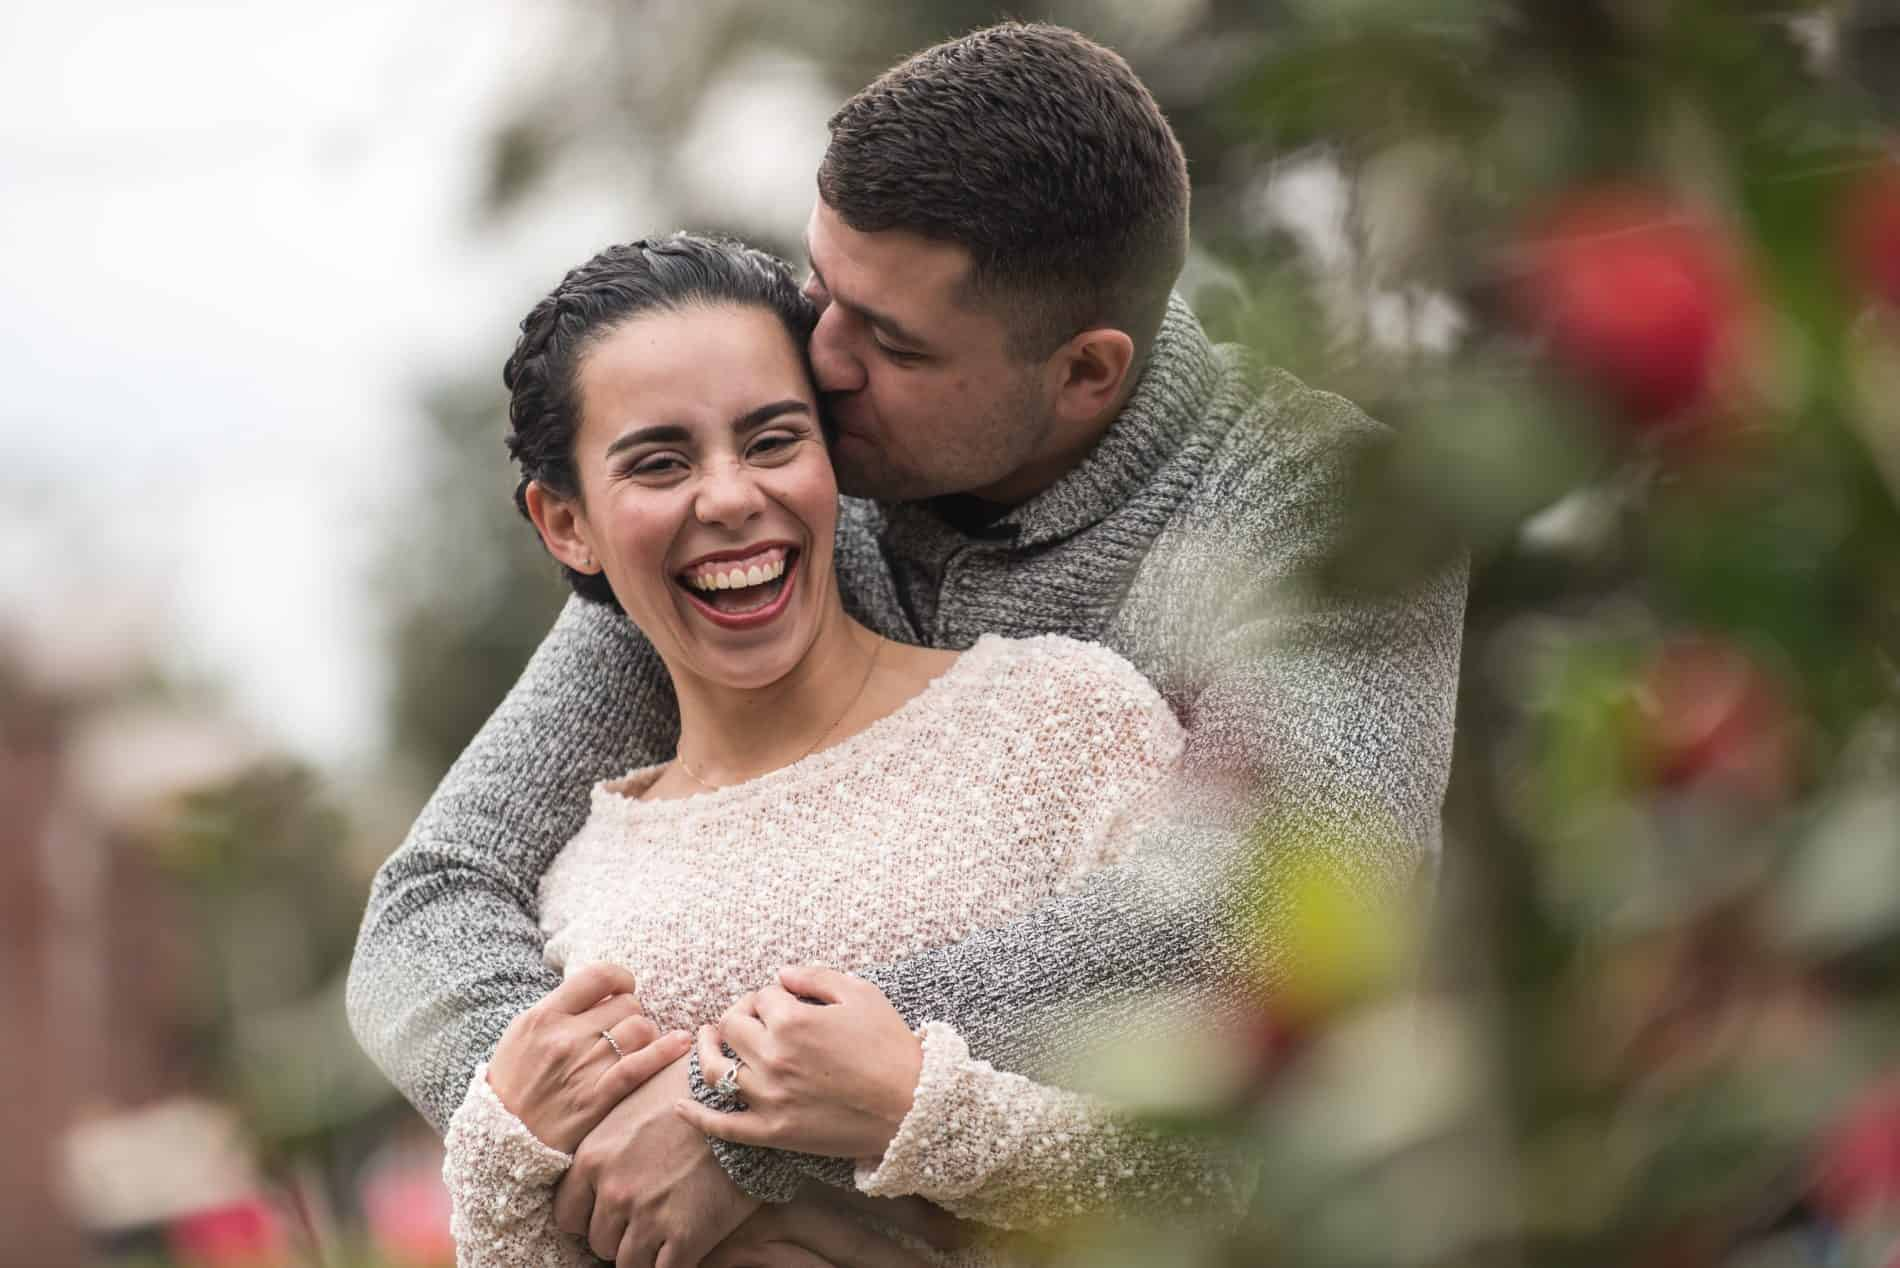 Winter Park Engagement Photos In the Rose Garden at Sunset